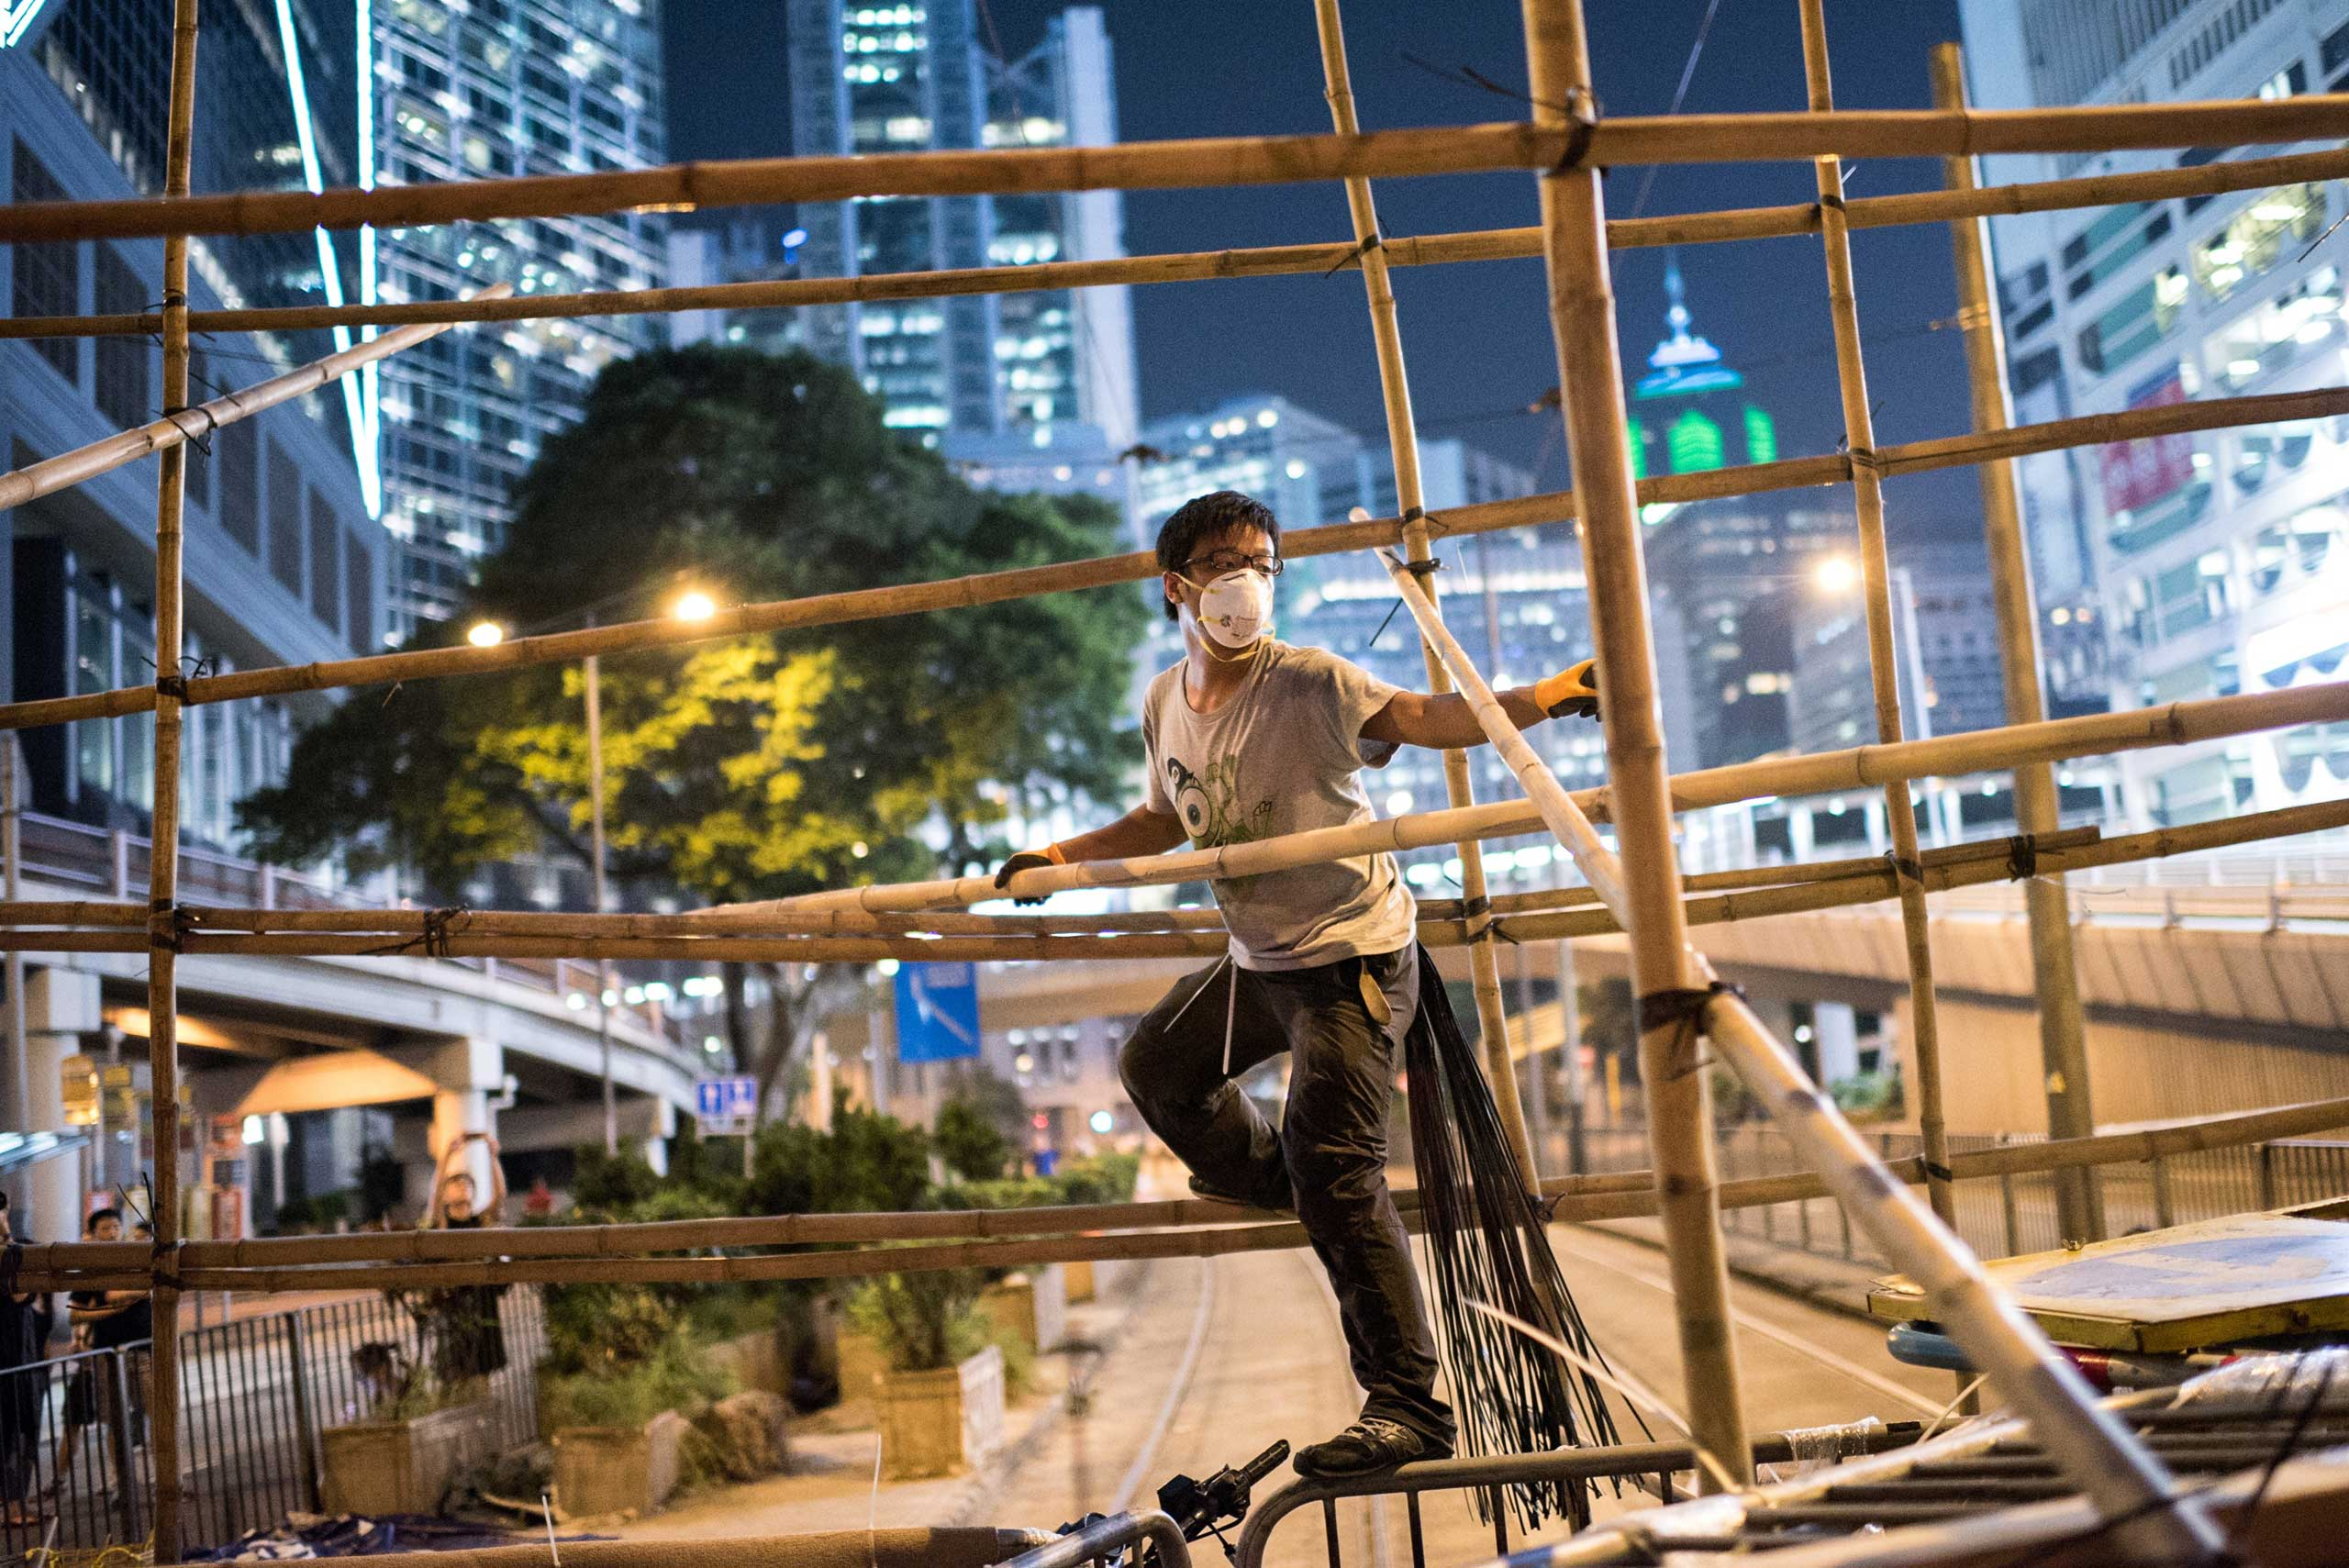 A pro-democracy protester uses bamboo to strengthen a barricade blocking a major road in Hong Kong on Oct. 13, 2014.